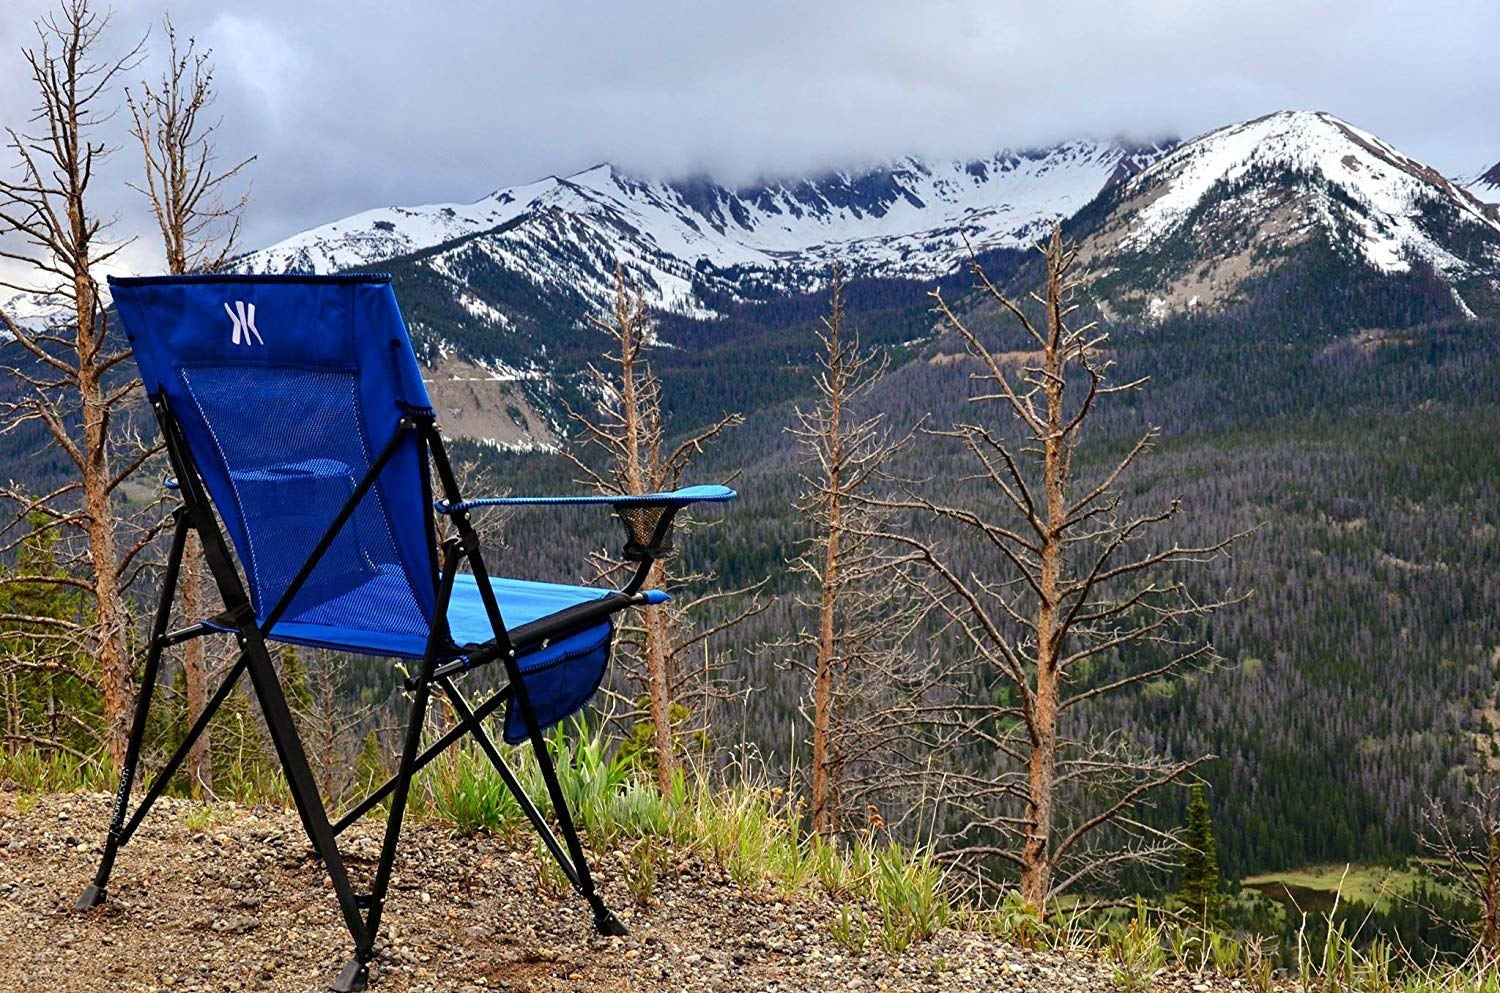 Best Features: Kijaro Dual Lock Portable Camping and Sports Chair